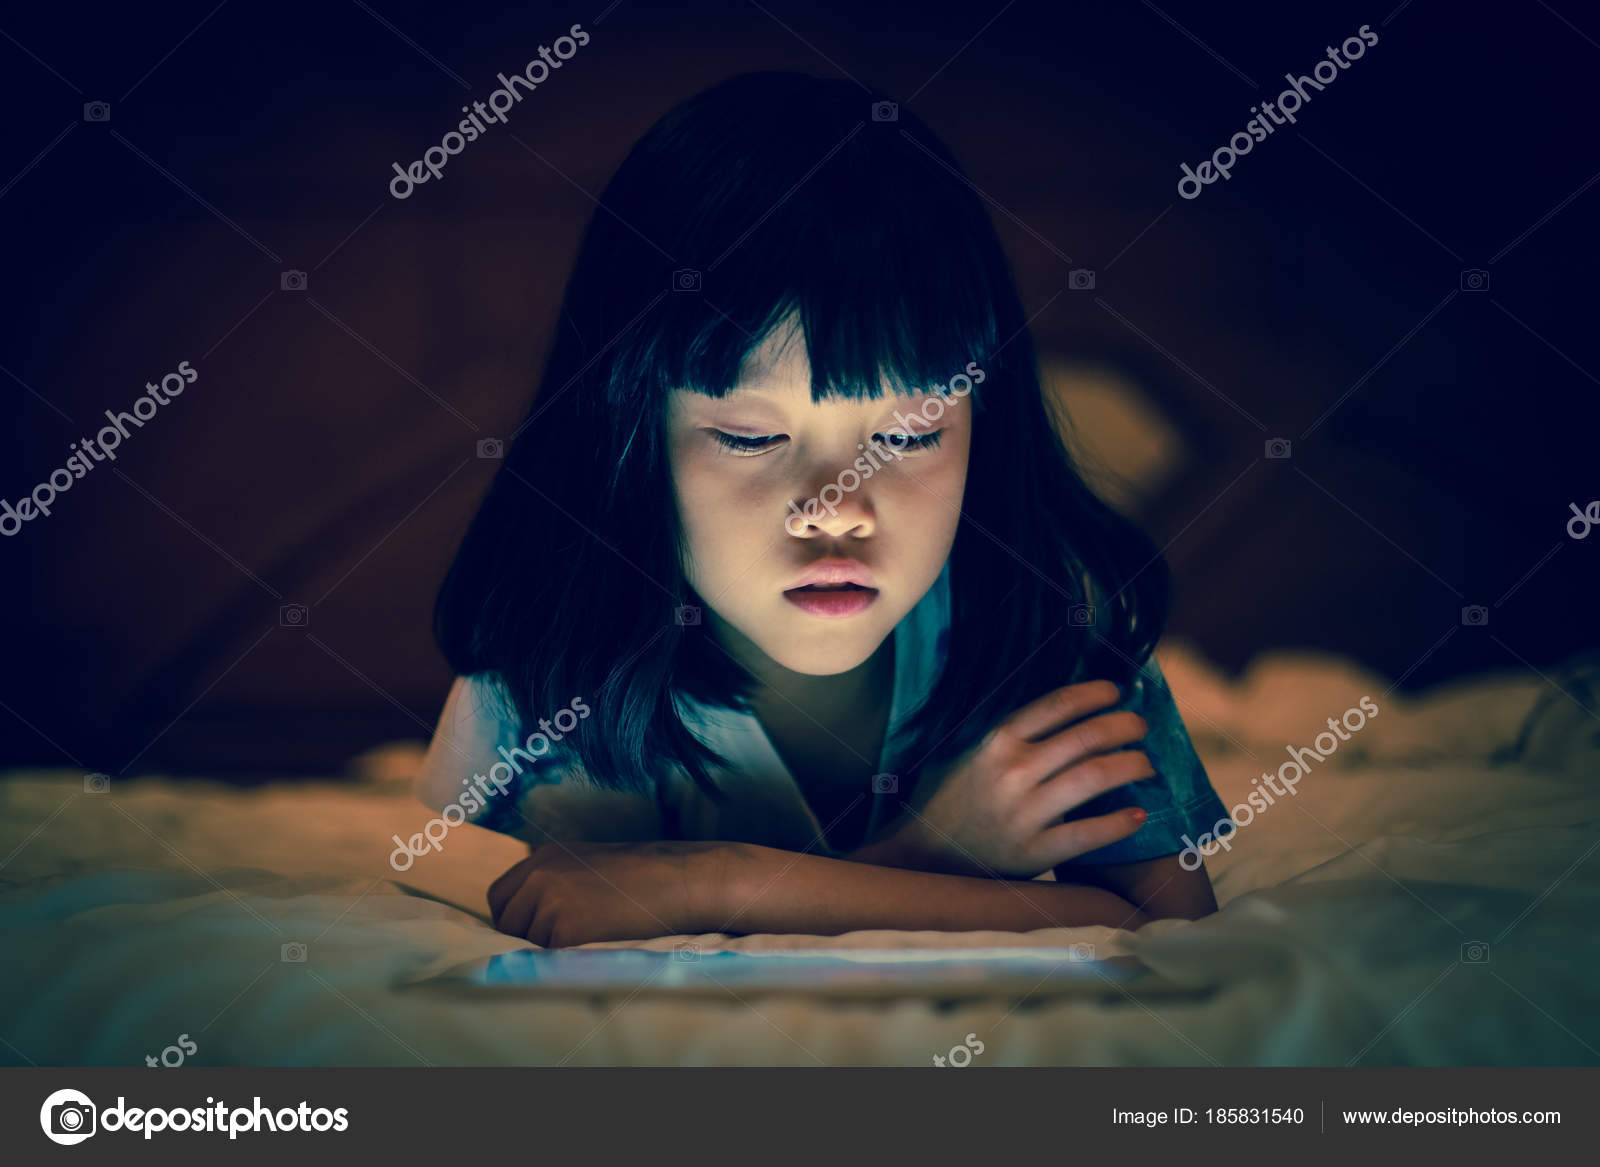 Asian Kid Girl Using Tablet Watching Movie While Lying On Bed In Dark Background Of Bedroom Bright Light Screen Reflex Her Face Photo By Vinnstock